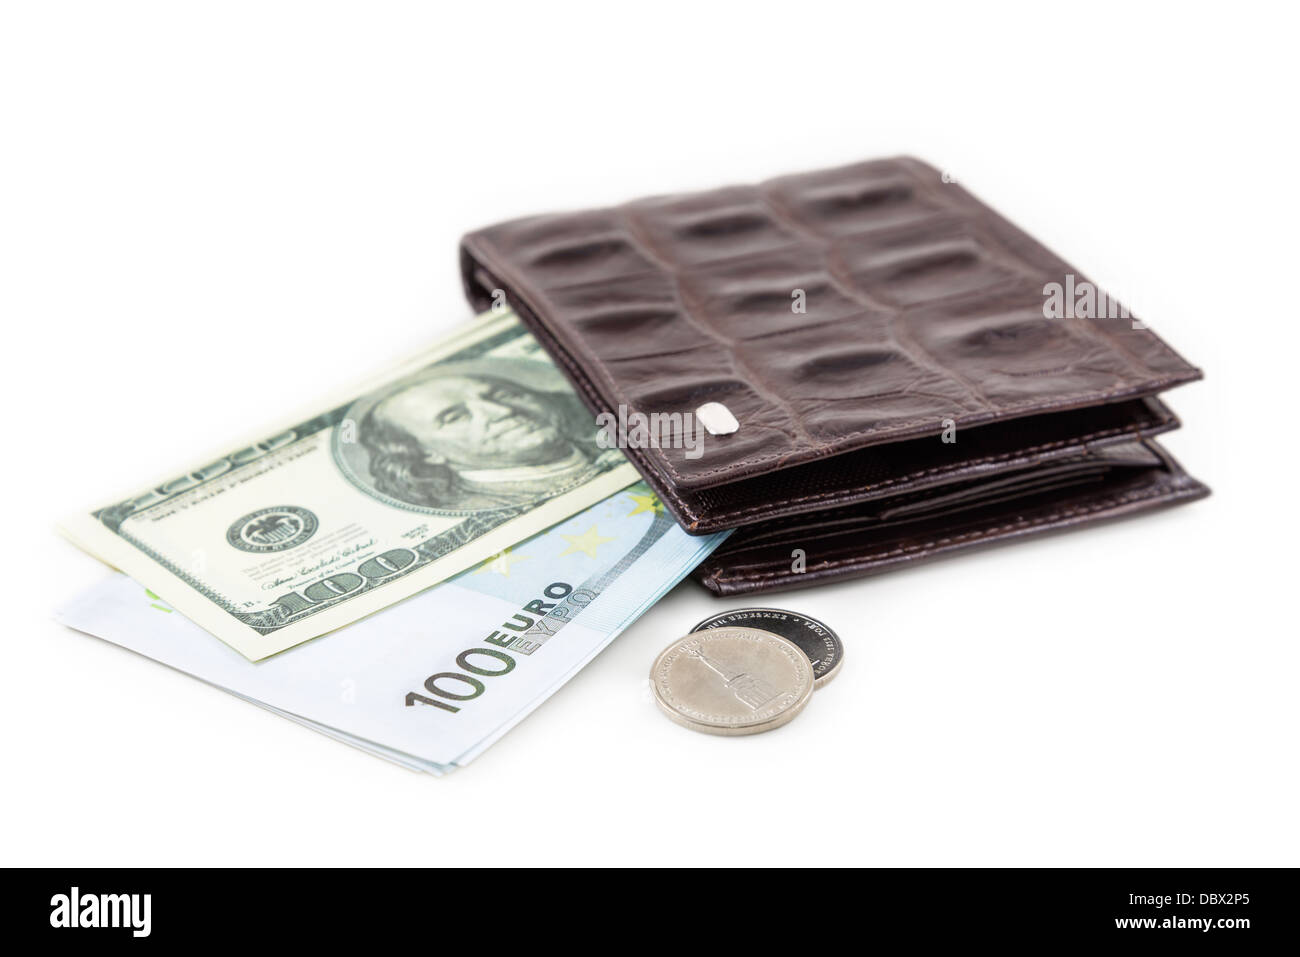 The brown leather wallet with euro and dollar is photographed on the close-up - Stock Image